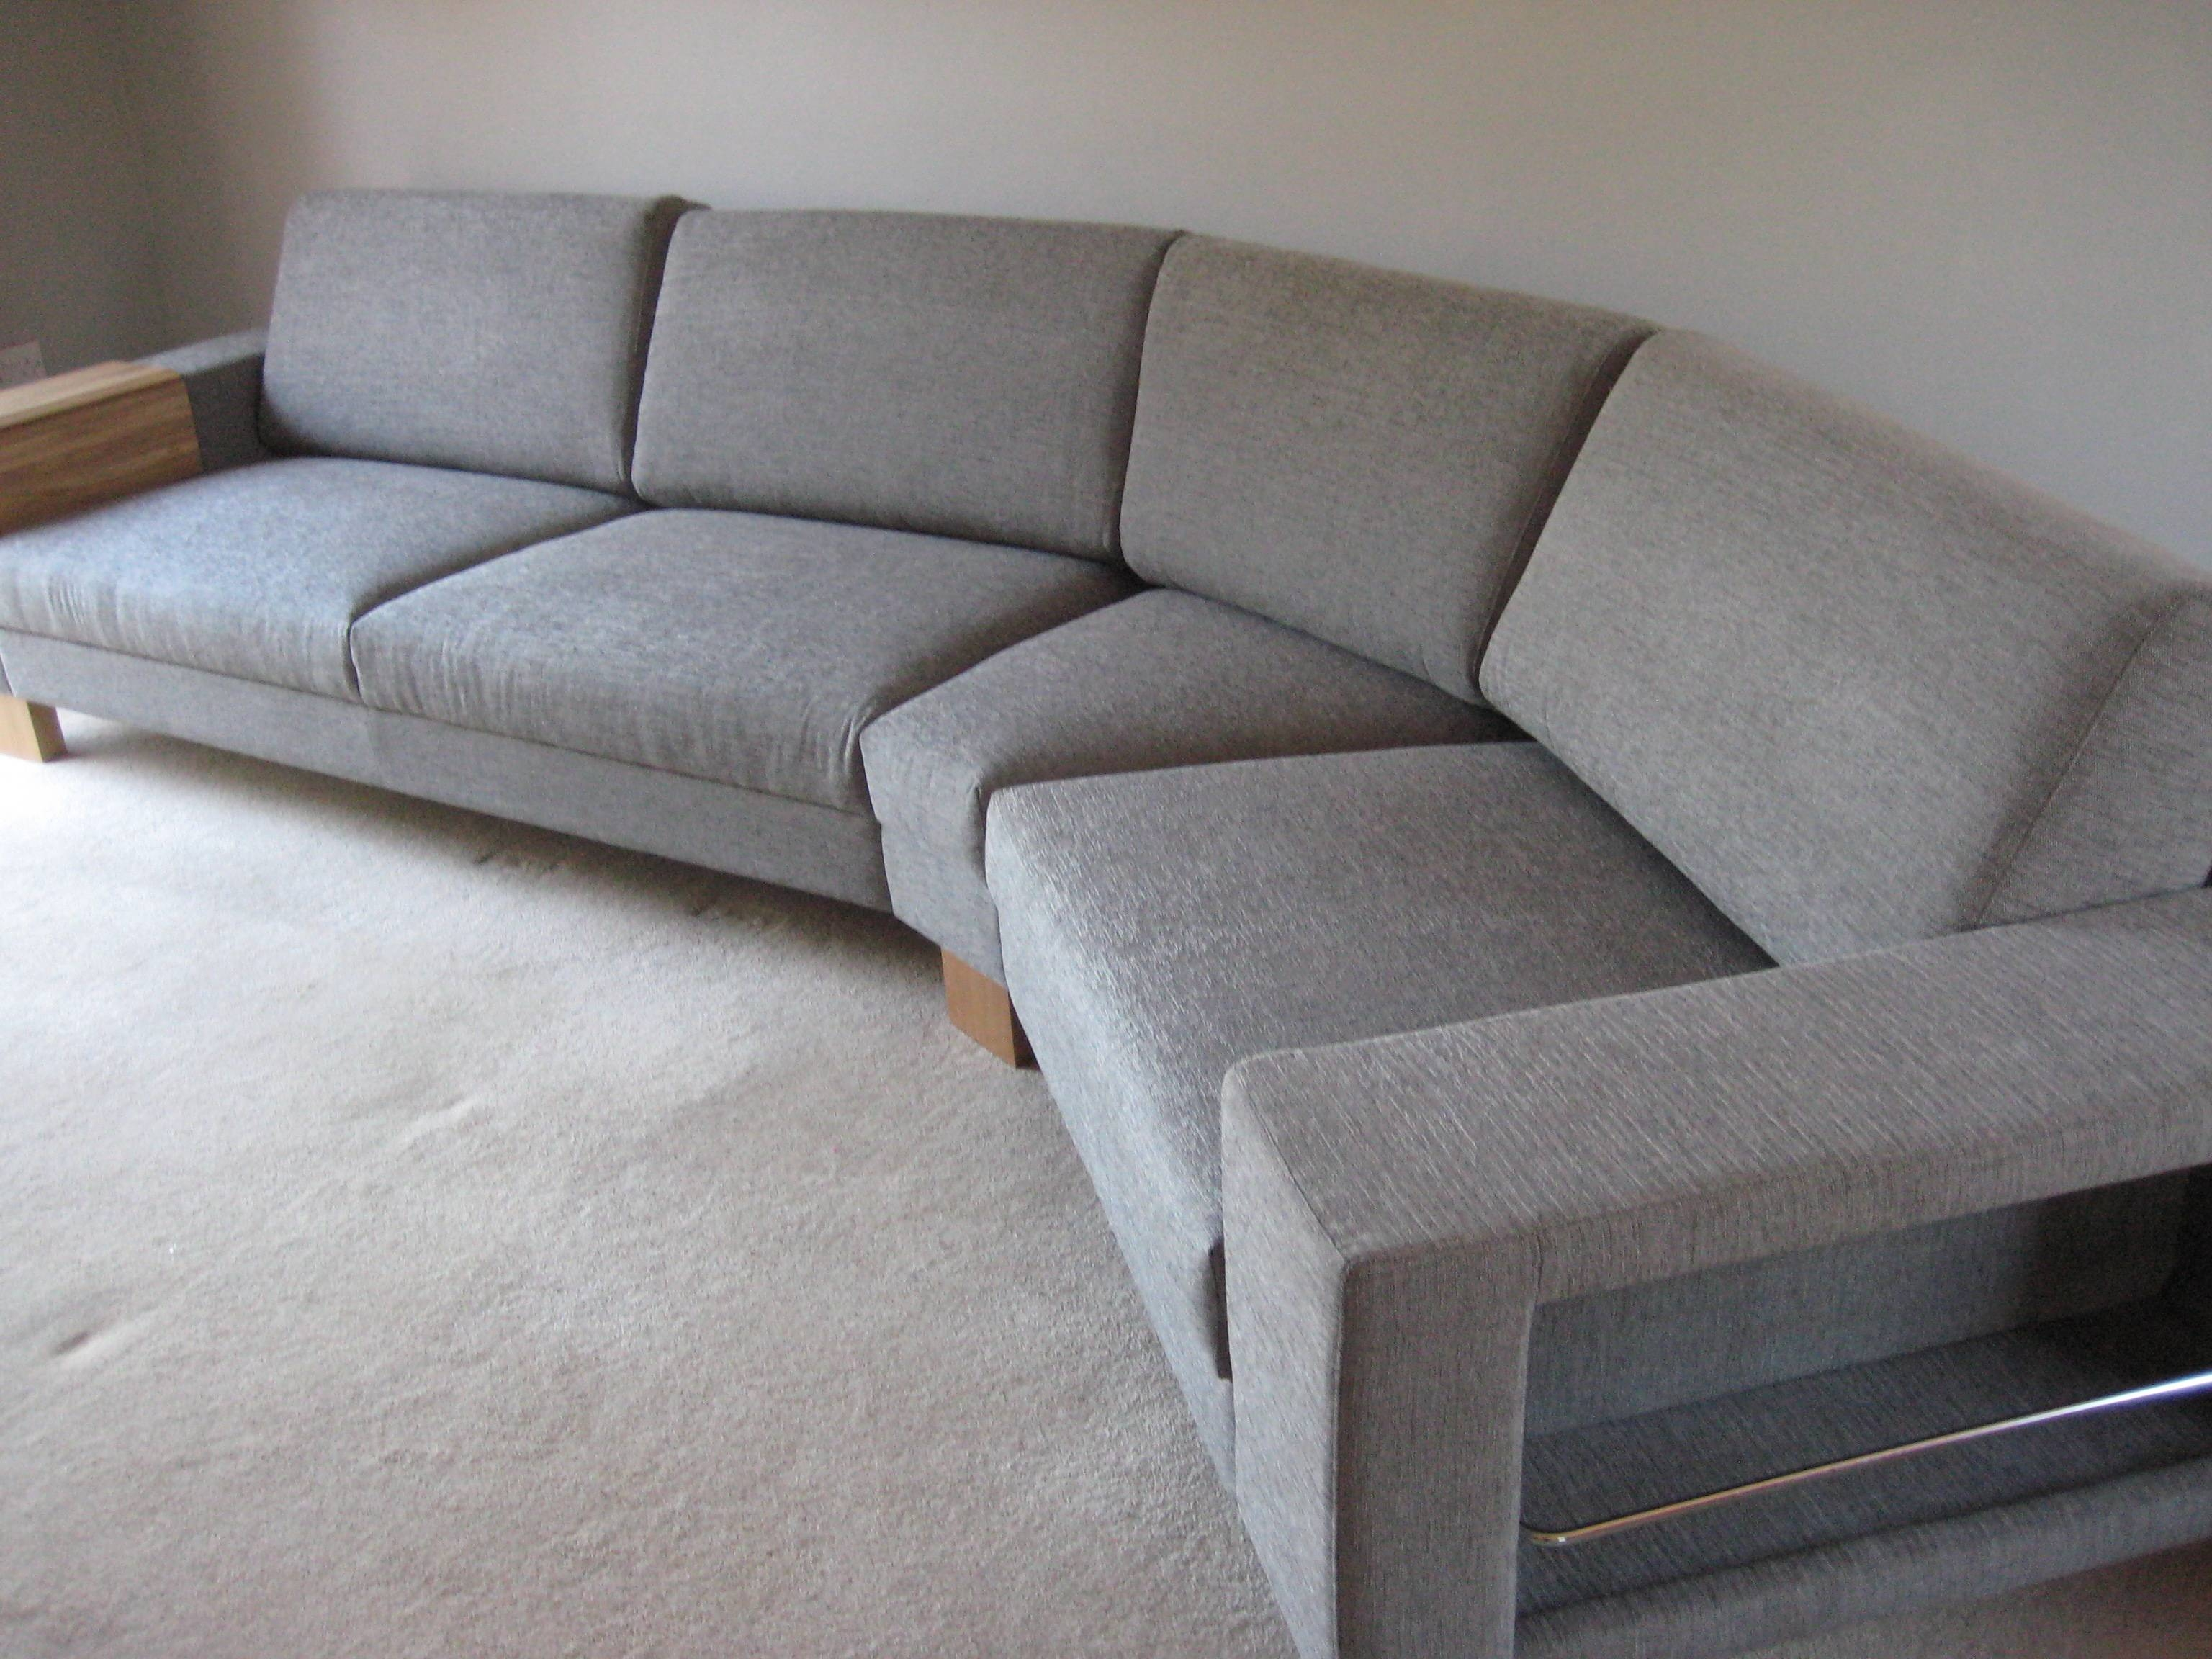 Beautiful Wide Seat Sectional Sofas 33 About Remodel Bradley pertaining to Bradley Sectional Sofa (Image 3 of 30)